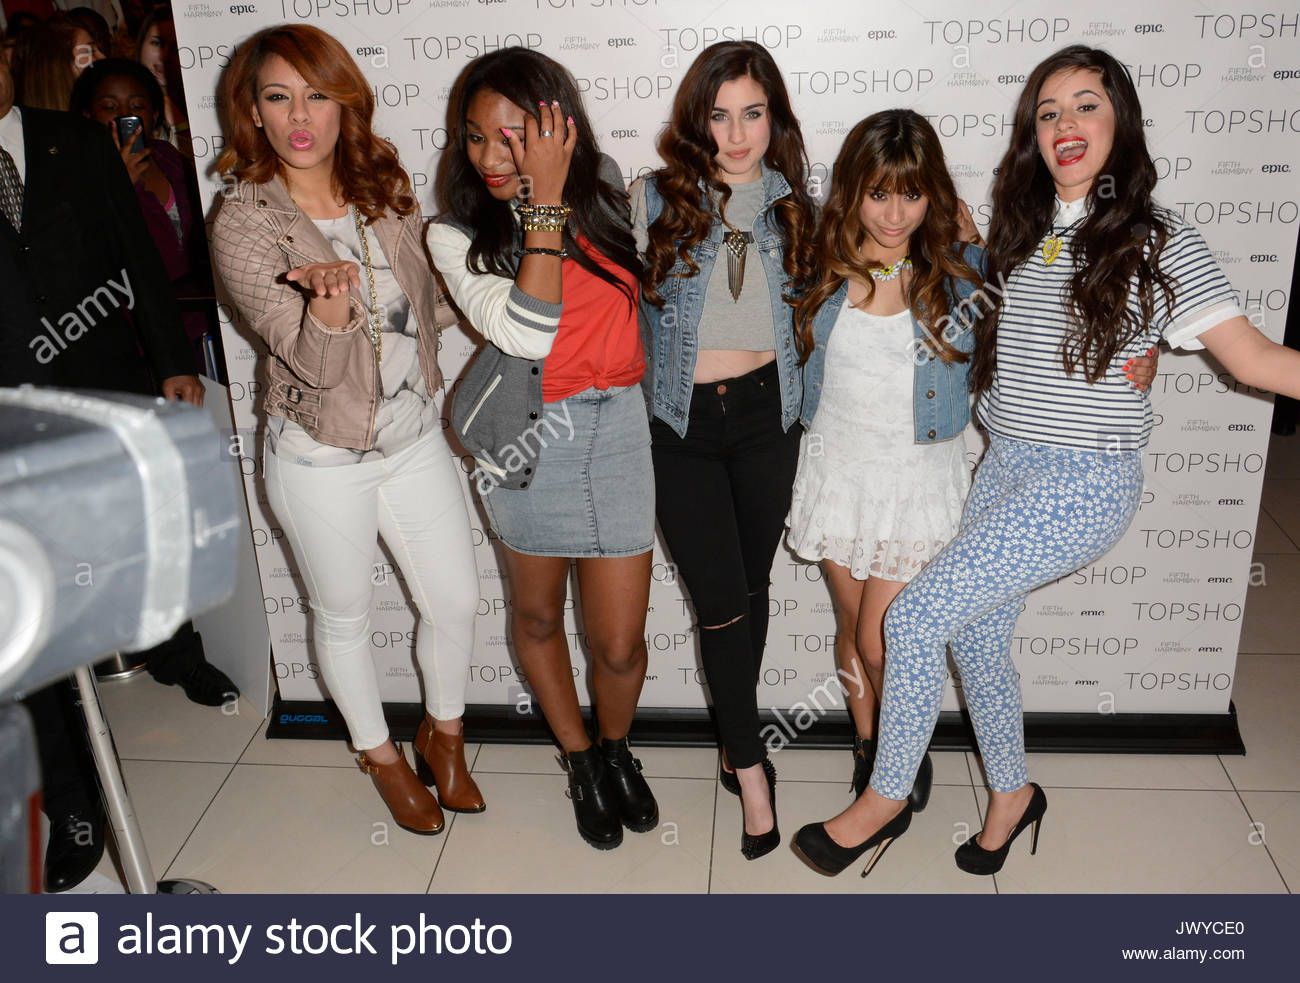 Fifth harmony dinah jane hansen normani hamilton lauren stock demi lovato with x factor finalists fifth harmony at top shop in soho nyc for a fan meet and greet m4hsunfo